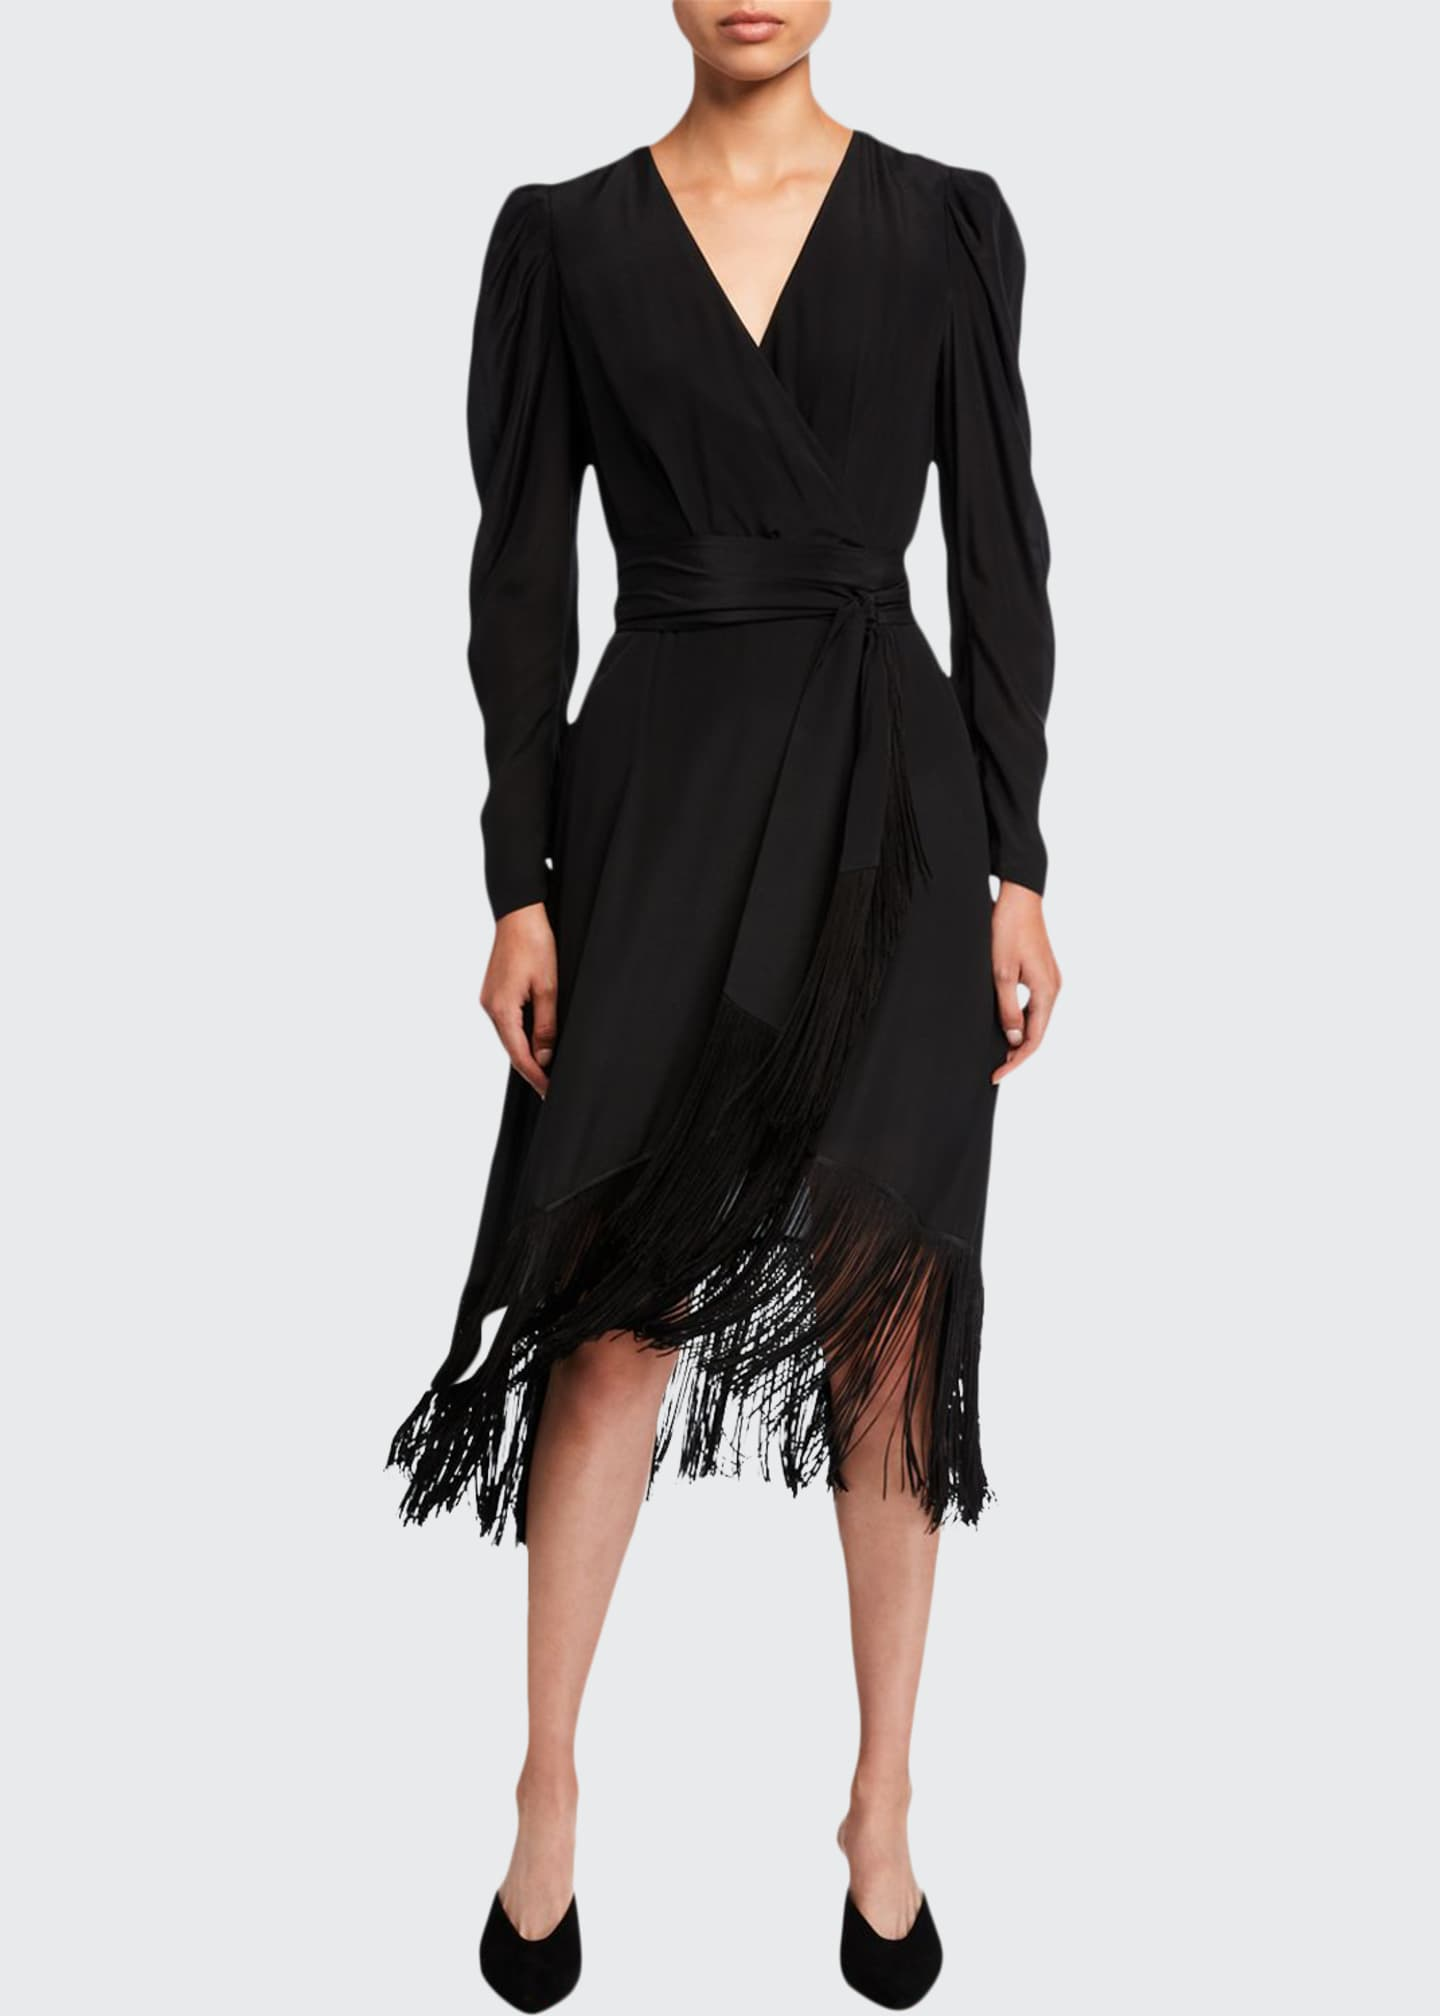 Kobi Halperin Phoebe Long-Sleeve Fringe Midi Dress